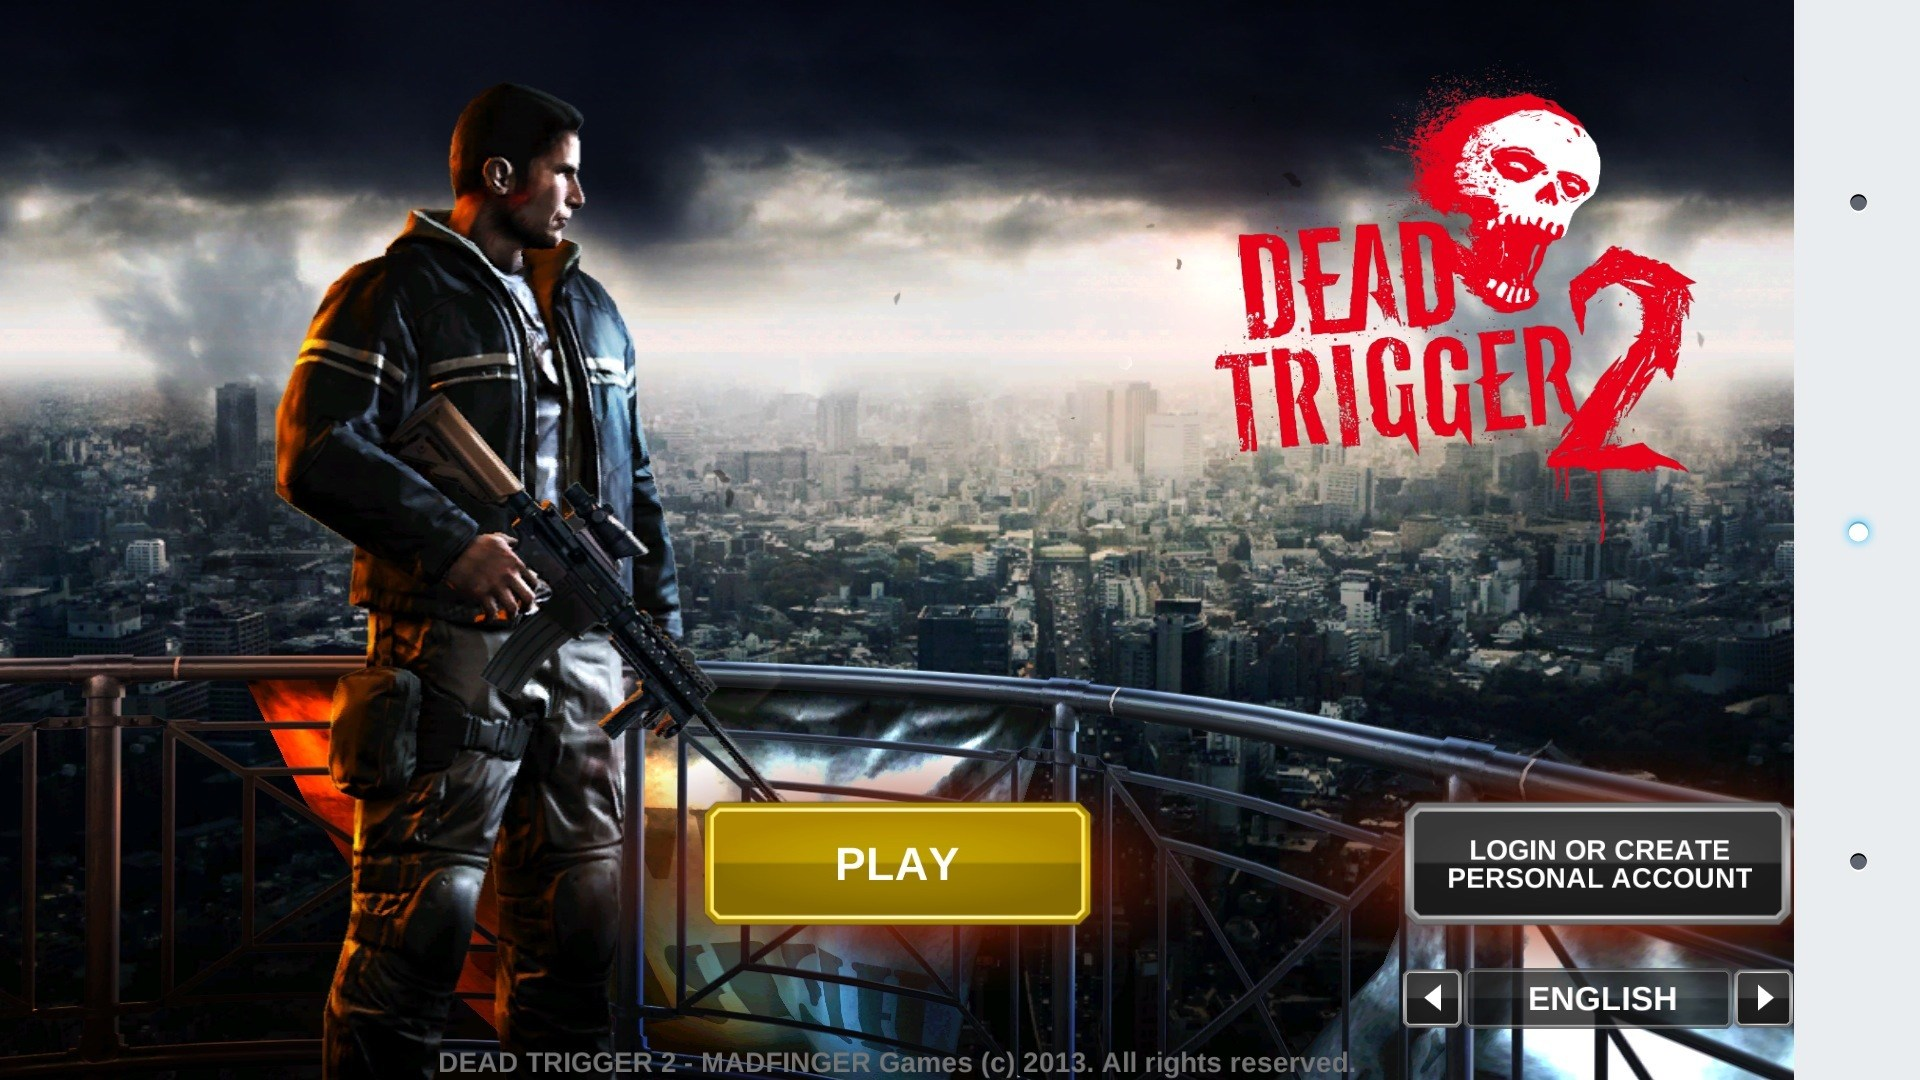 Phone Games For Android Phone Download how to download games on an android phone images guru dead trigger for